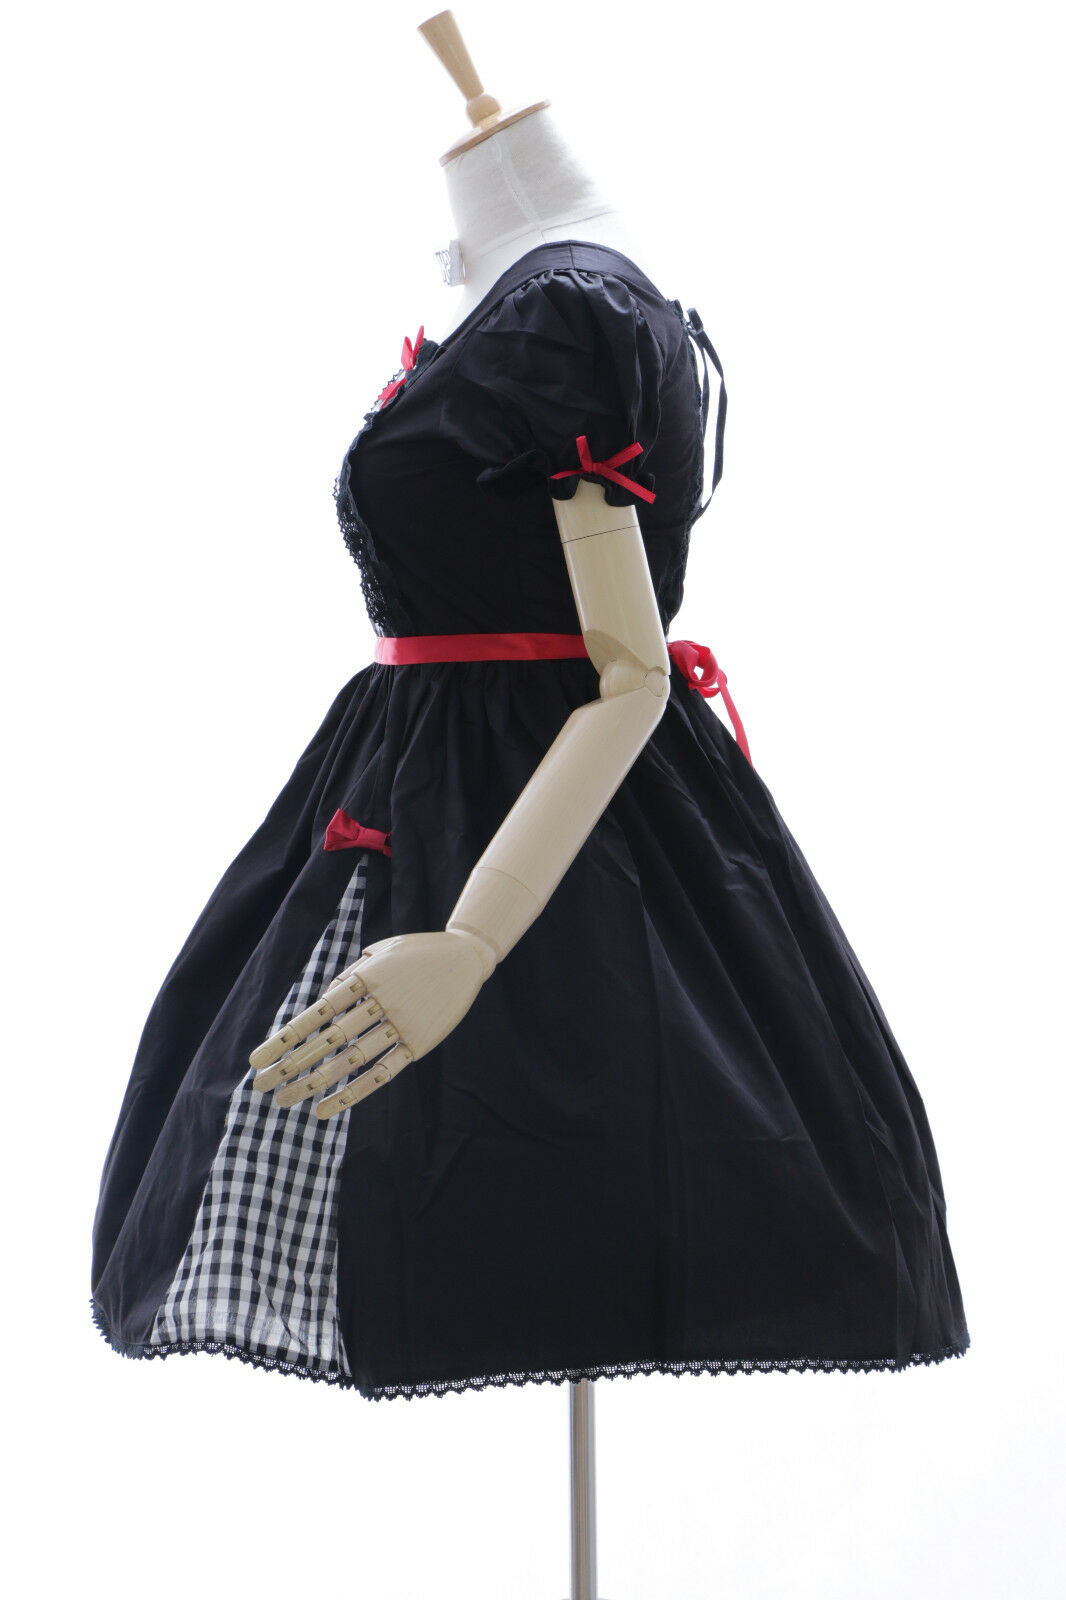 JL-626 Karo black Kleid Stretch Classic Gothic Lolita Kostüm Kostüm Kostüm dress Cosplay 28bb1a